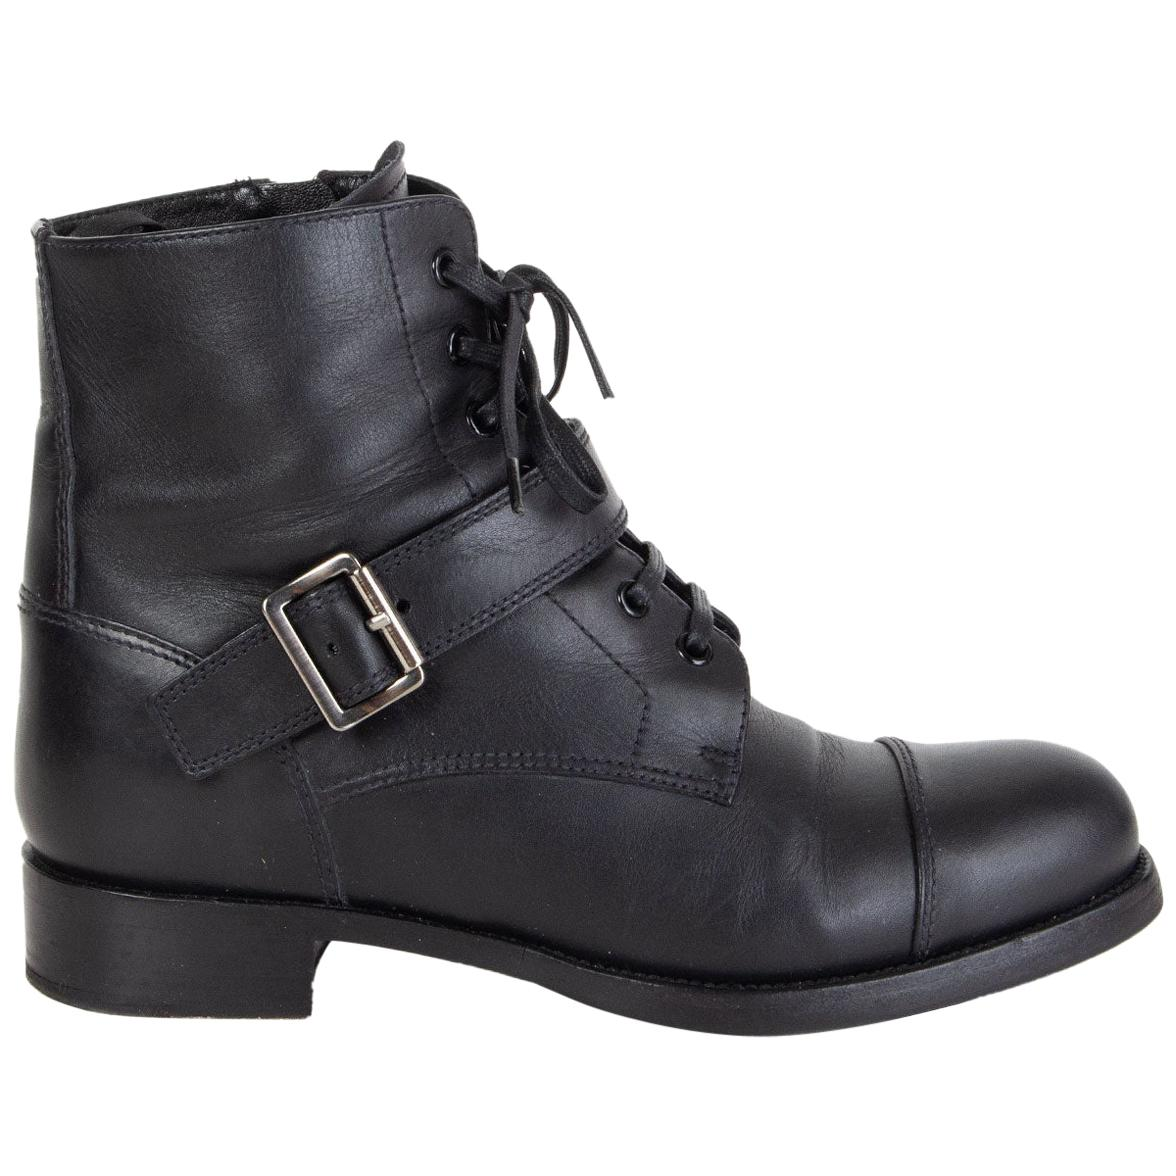 PRADA black leather Monk Strap Lace-up Ankle Boots Shoes 38.5